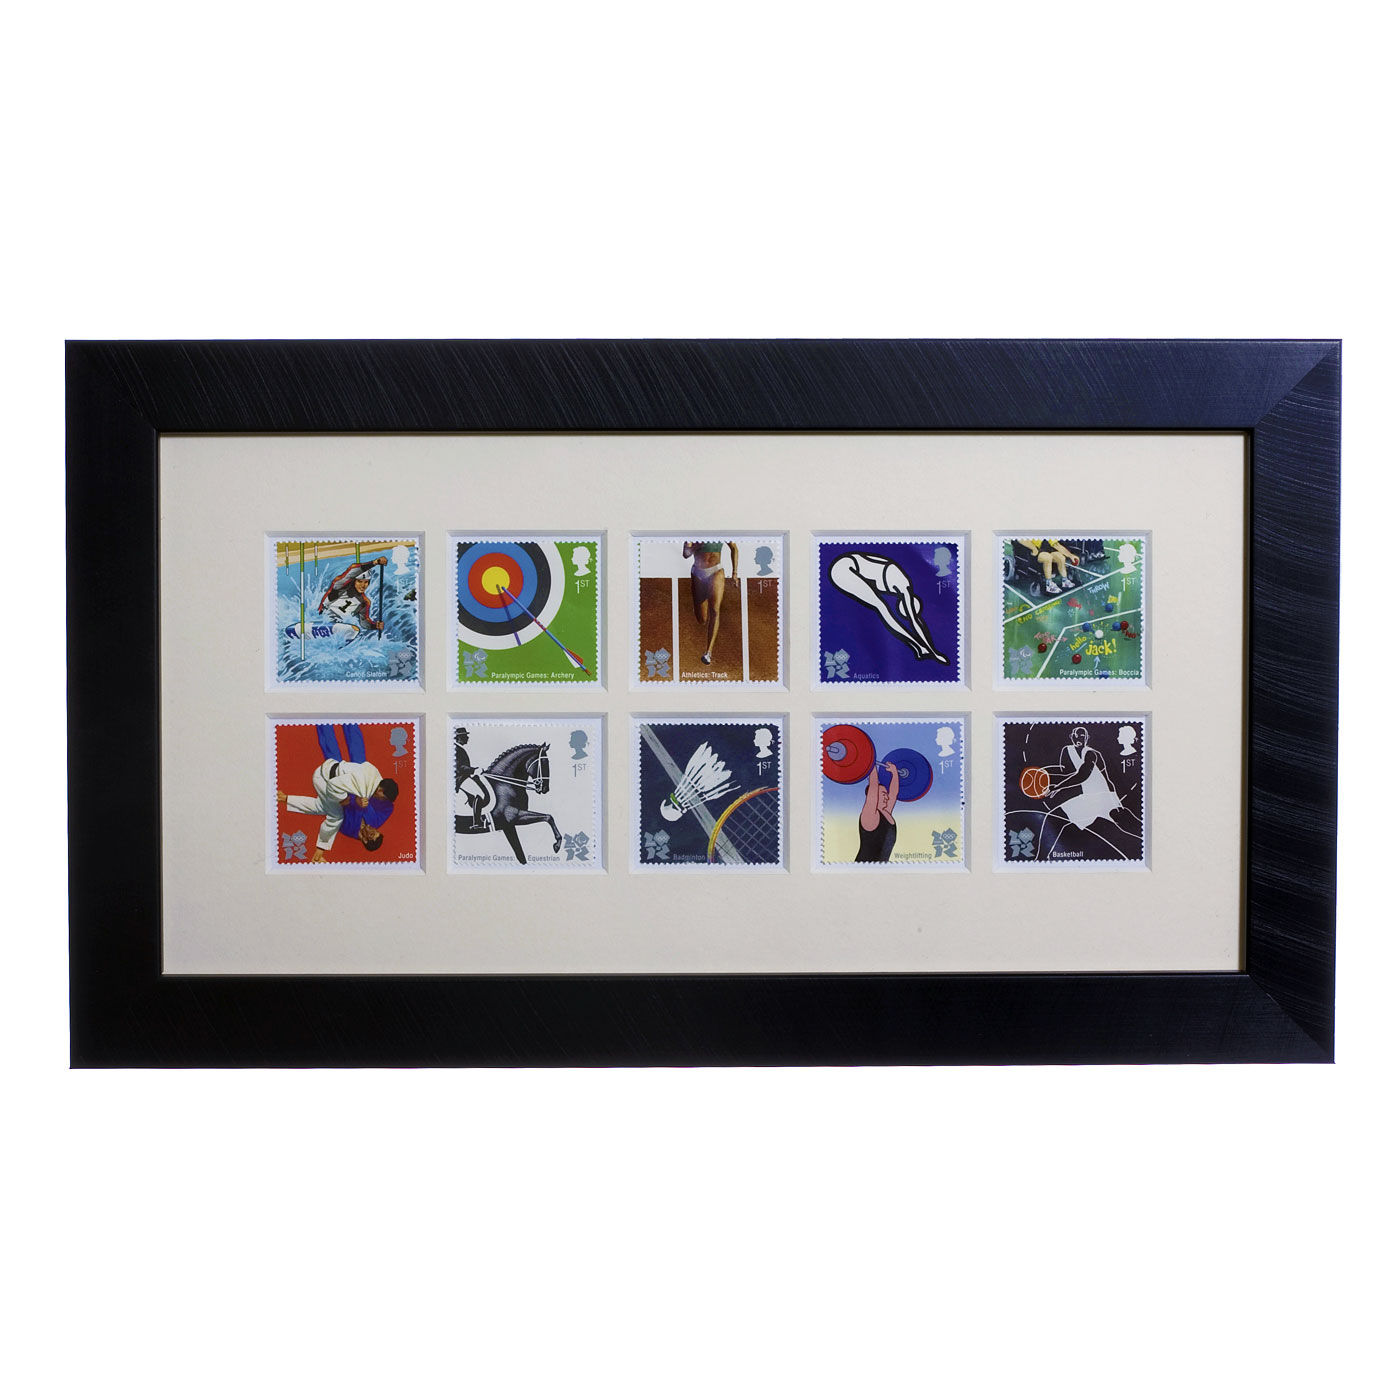 London 2012 set of 10 framed stamps 2009 edition